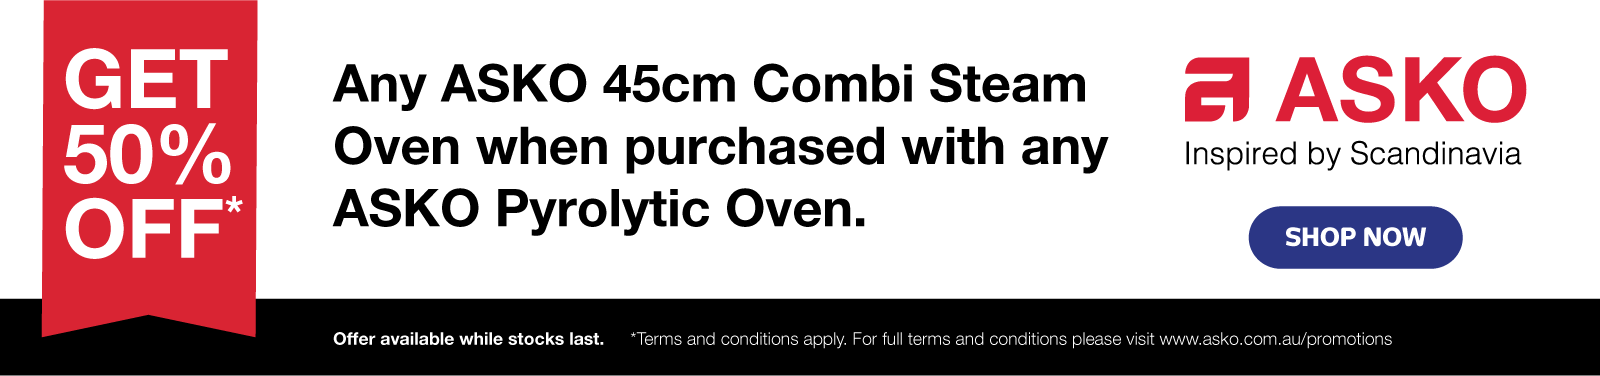 ASKO Get 50% Off Combi Steam Oven When Purchased with Pyrolytic Oven